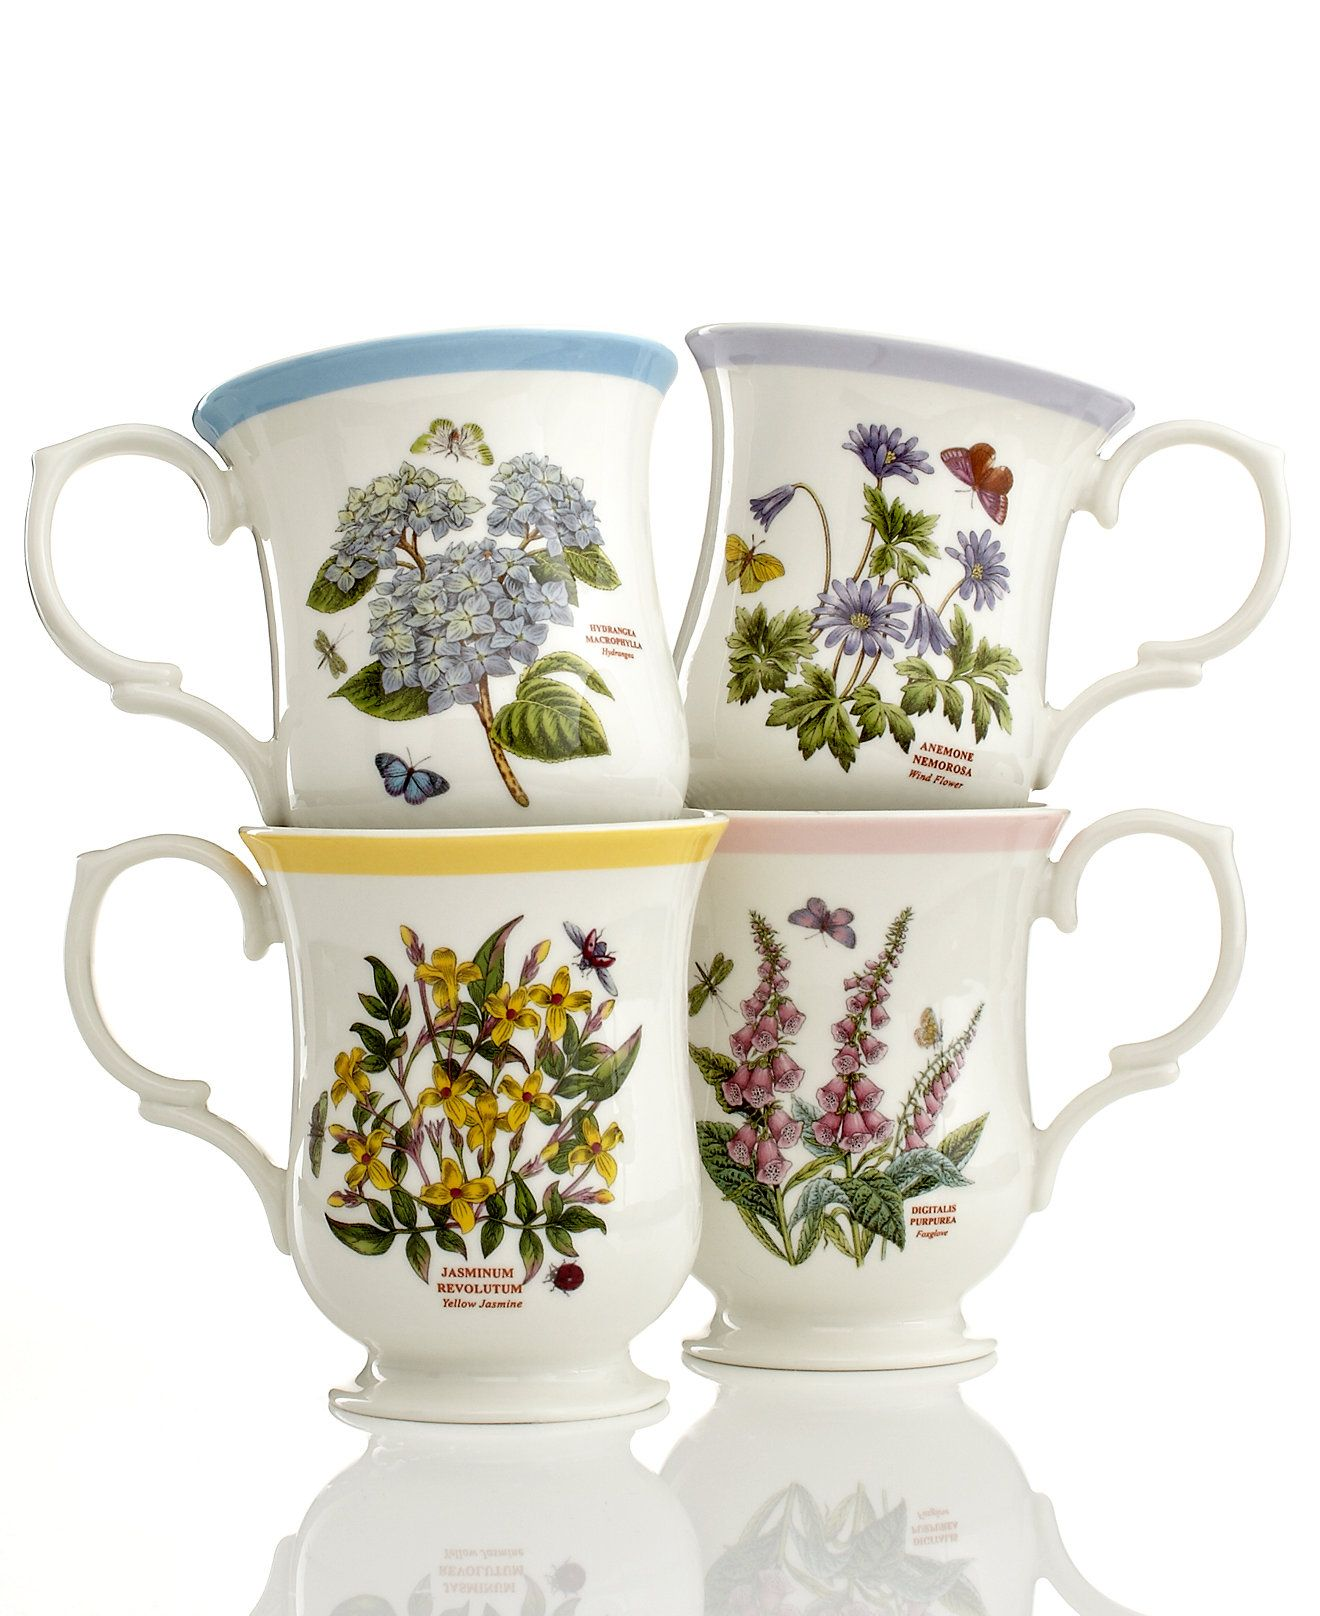 Portmeirion Dinnerware Botanic Garden Terrace Assorted Mugs  sc 1 st  Pinterest & Portmeirion Dinnerware Botanic Garden Terrace Assorted Mugs ...